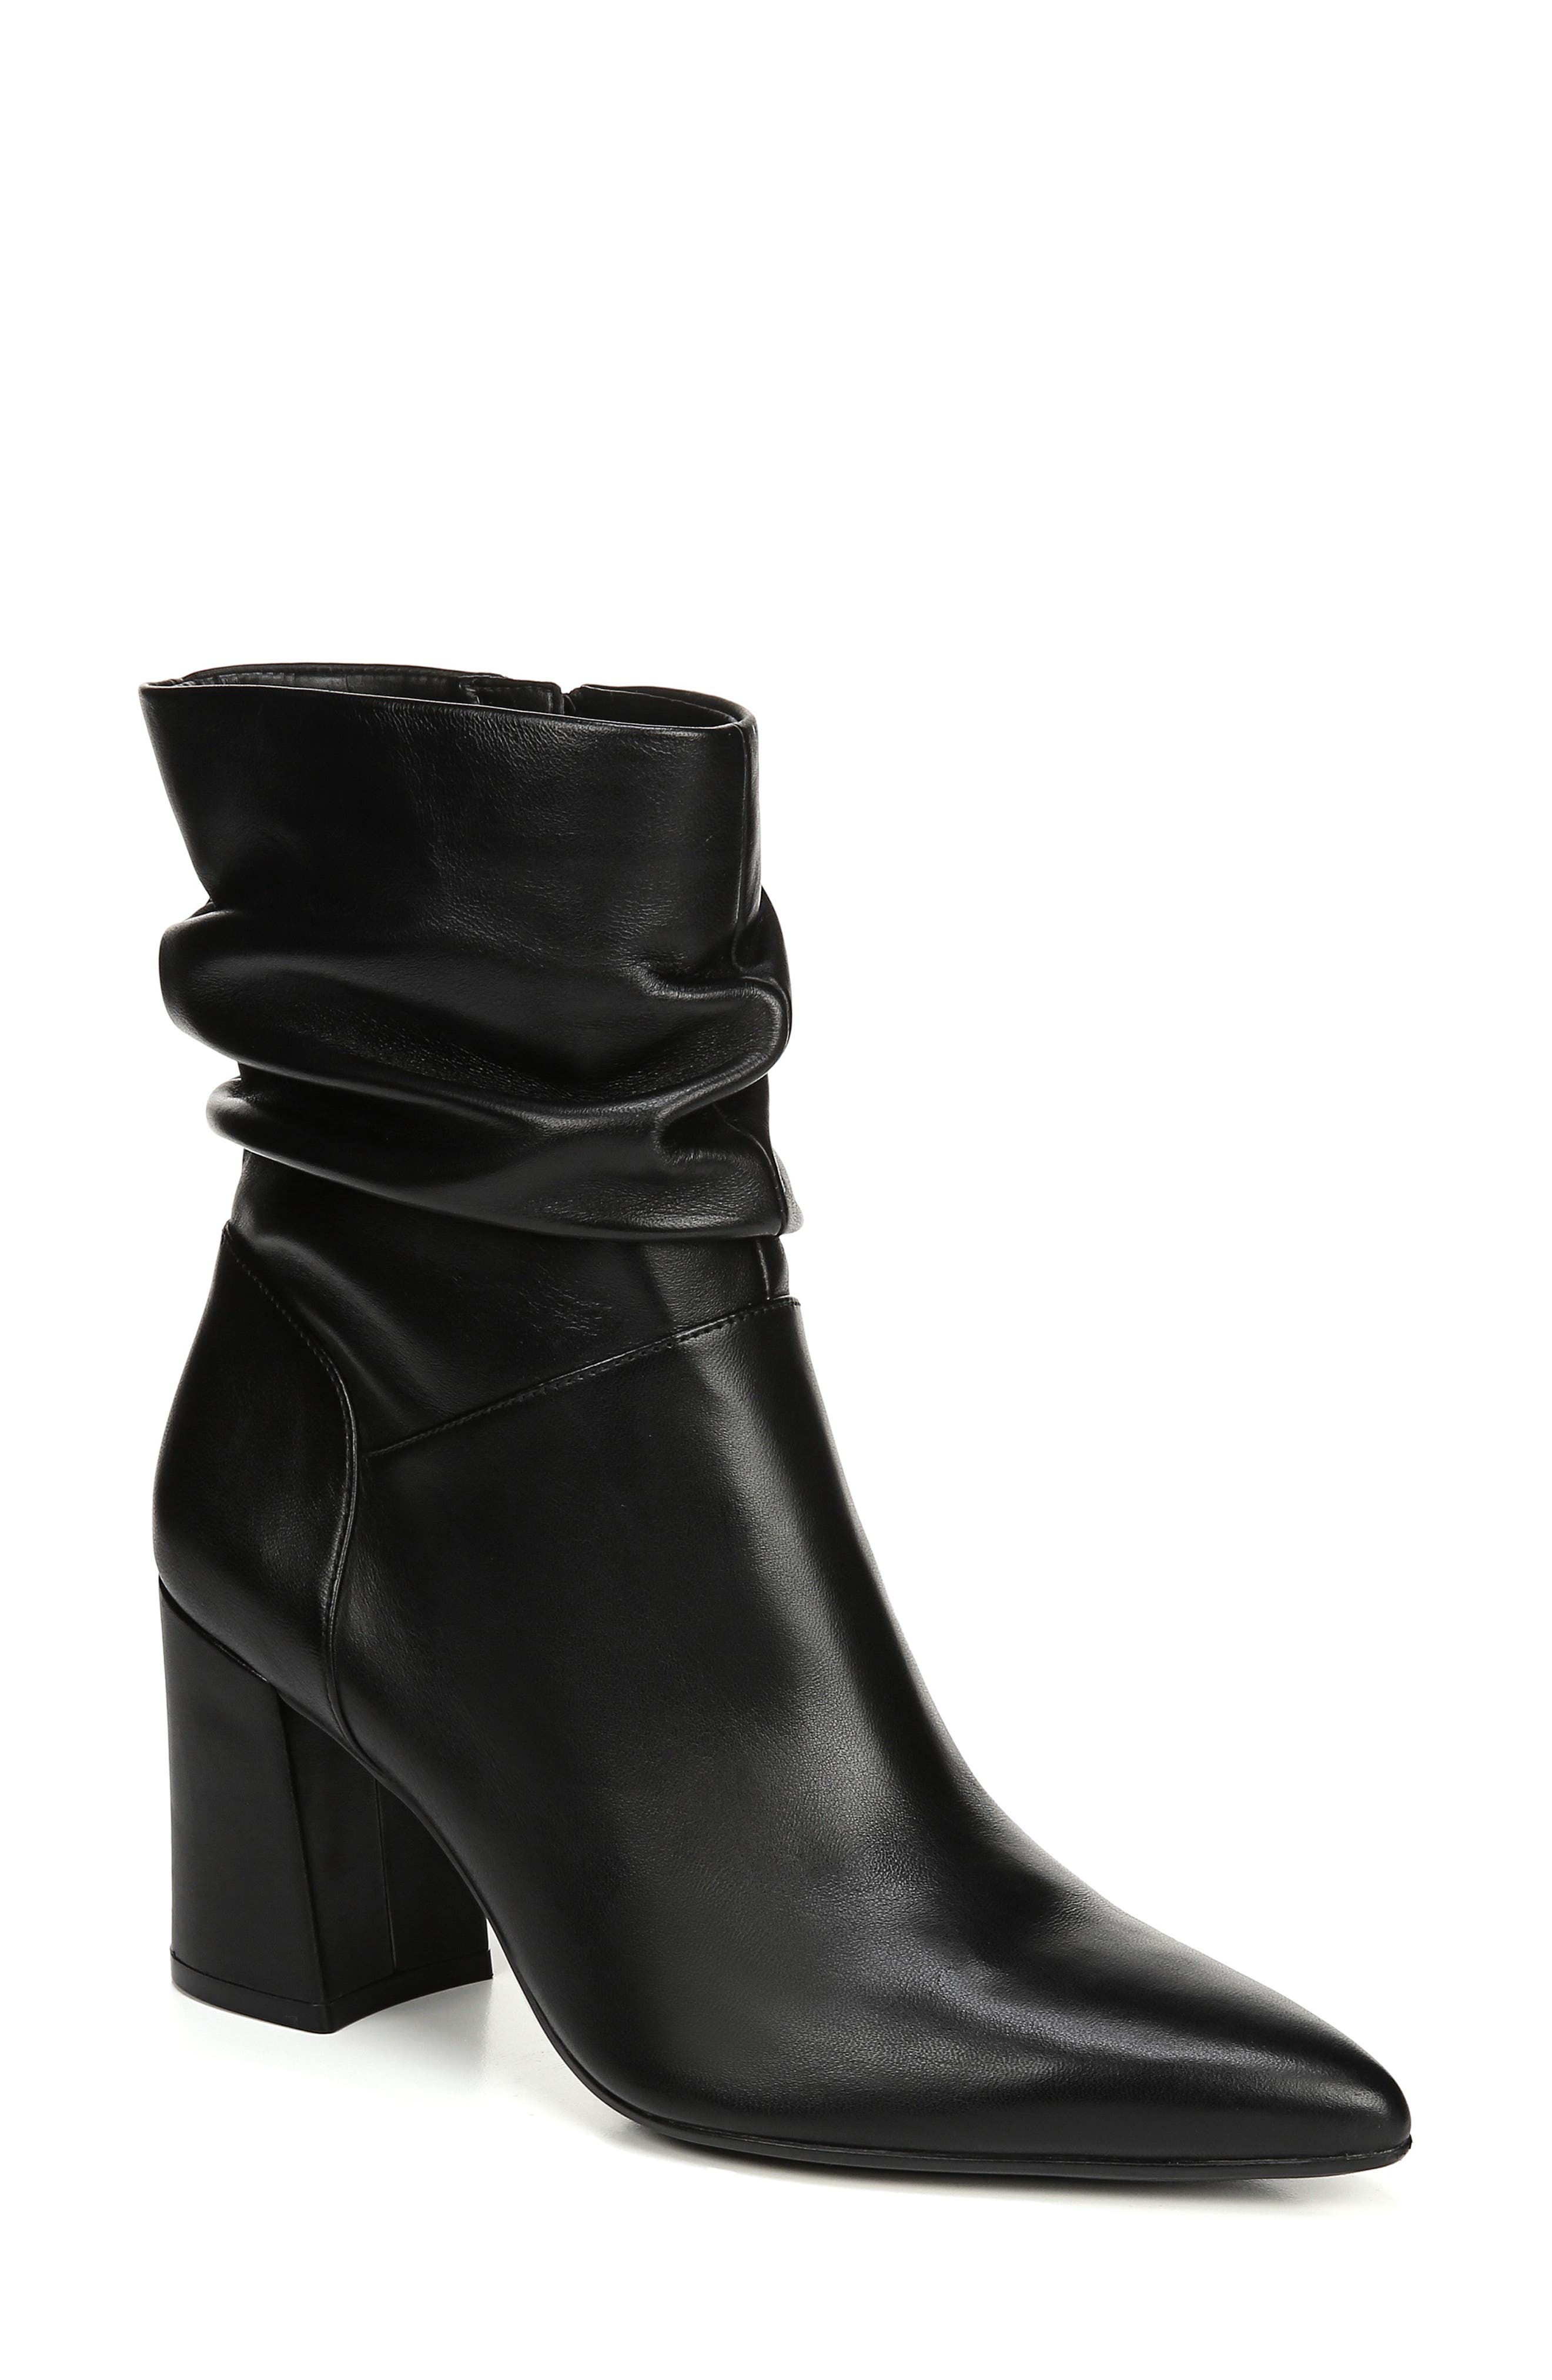 Naturalizer Hollace Slouchy Bootie W - Black